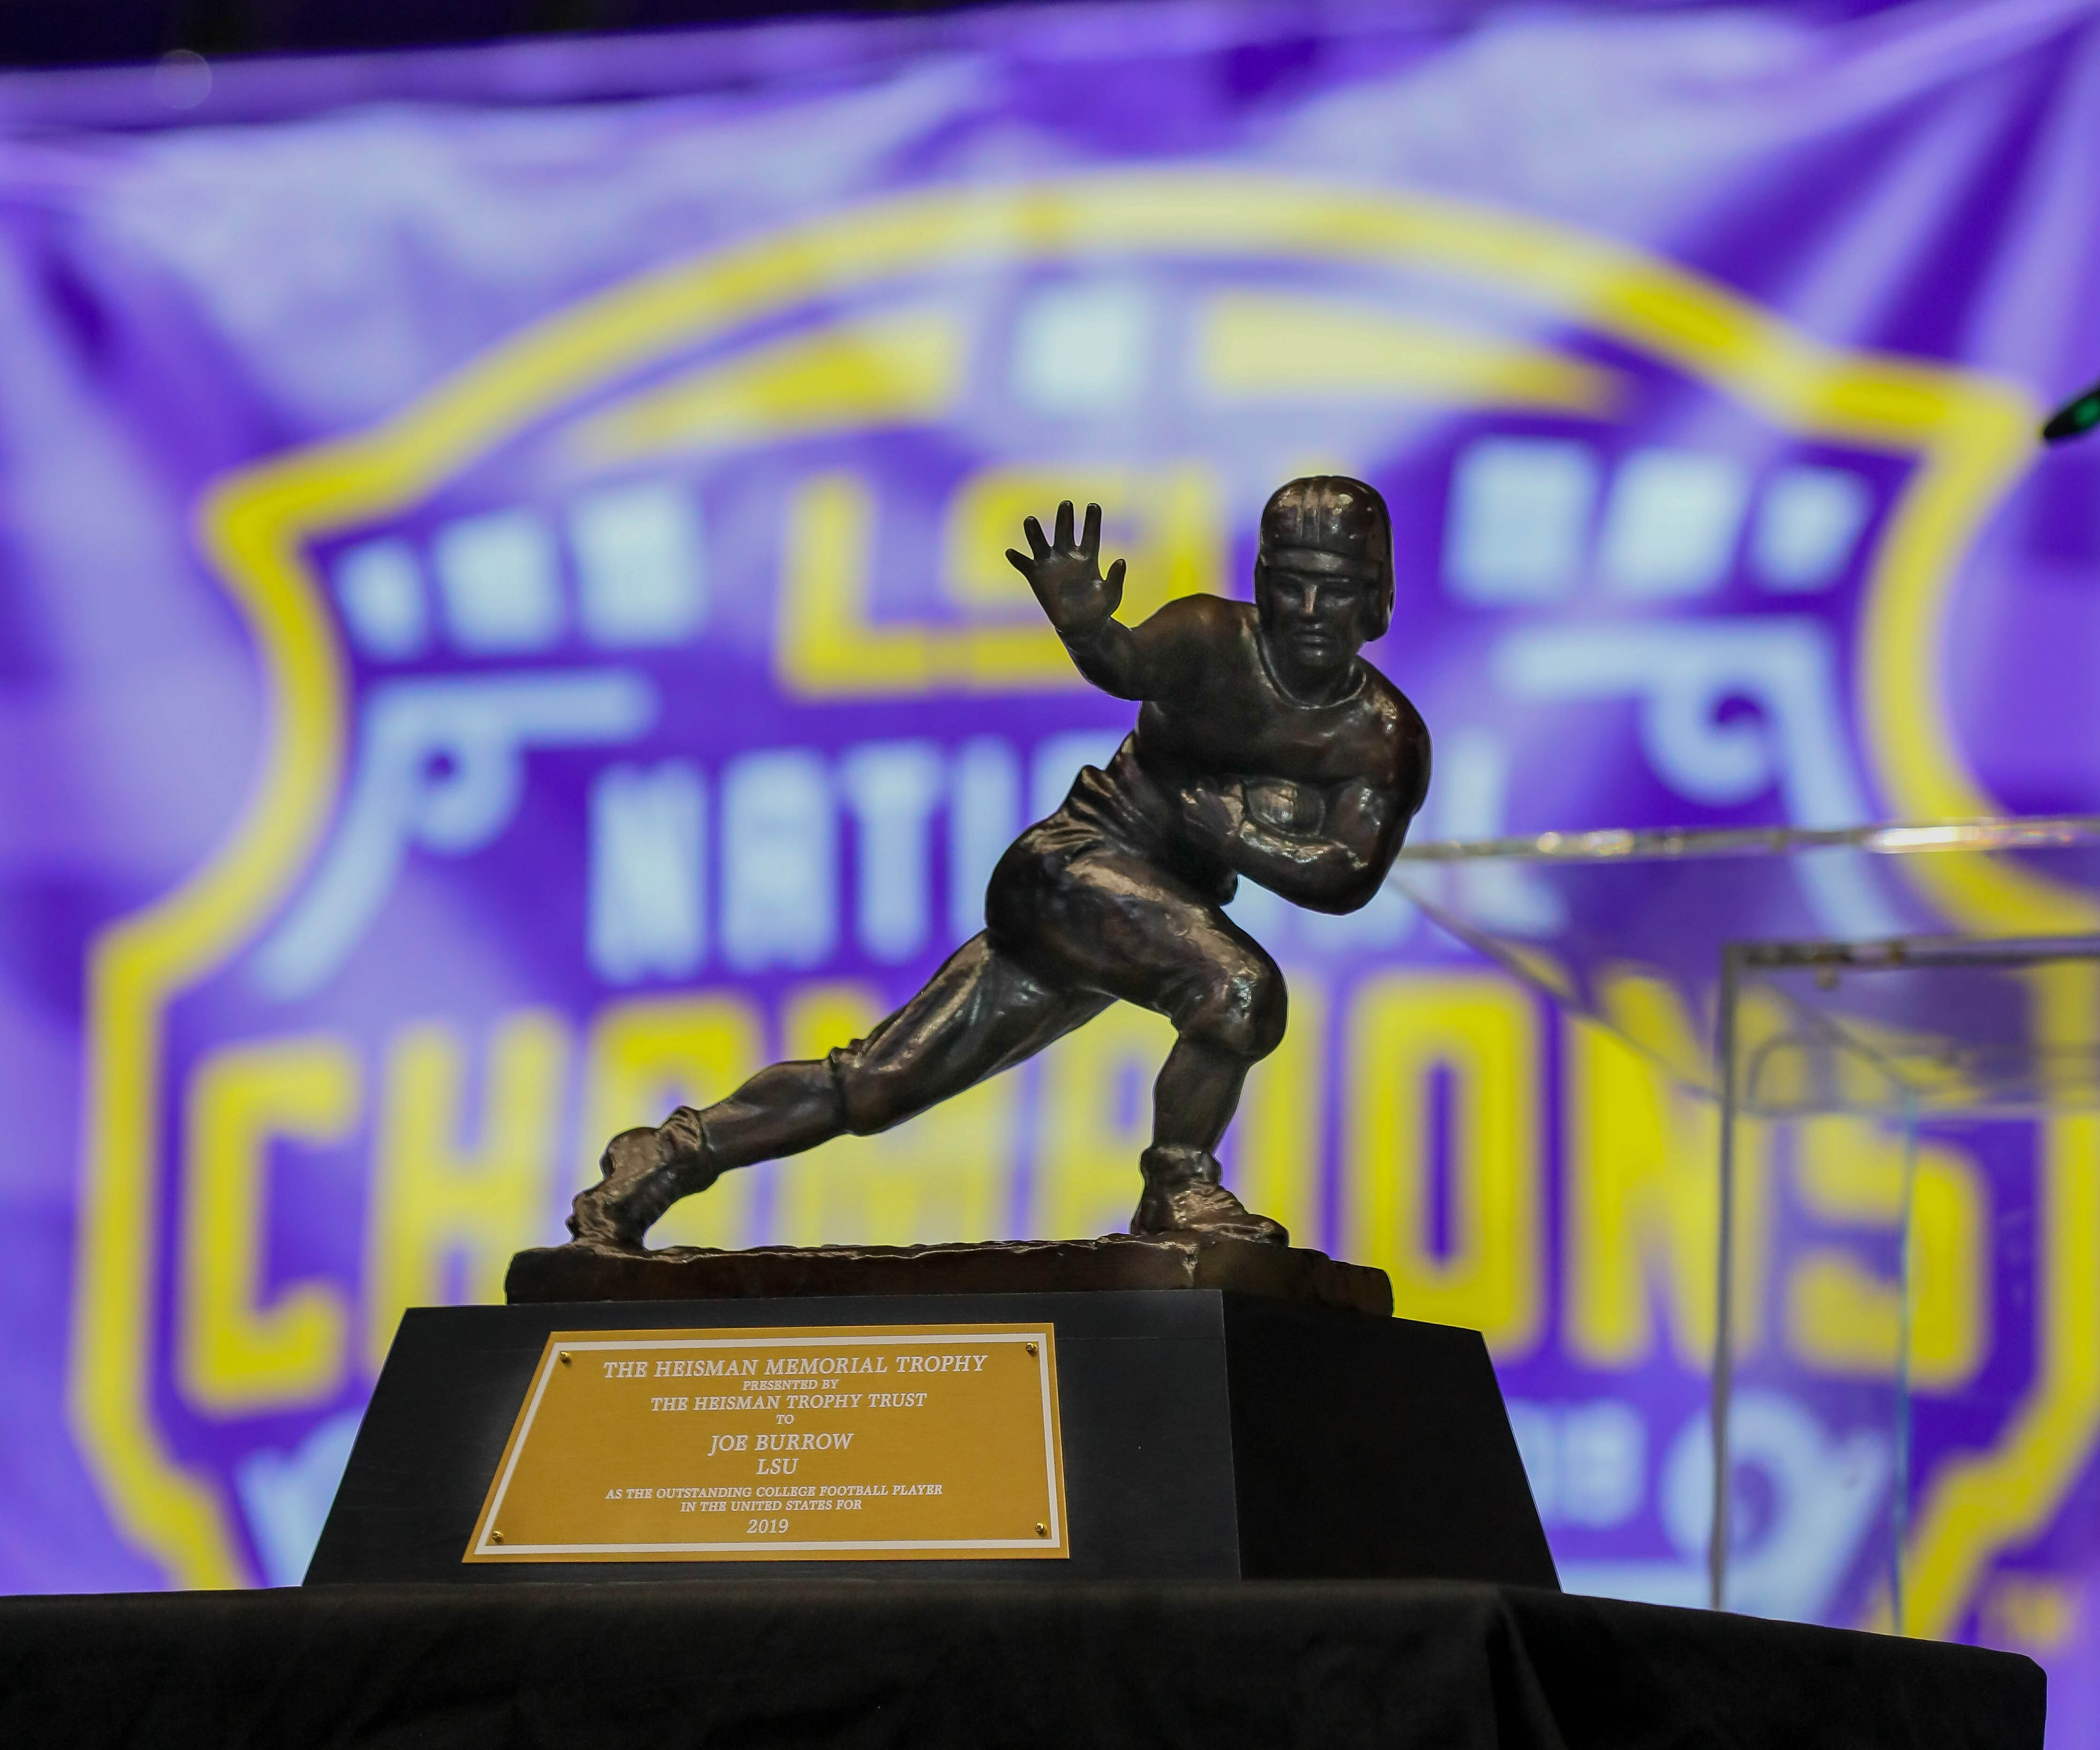 View of the Heisman trophy on display during the LSU championship trophy presentation at Pete Maravich Assembly Center.